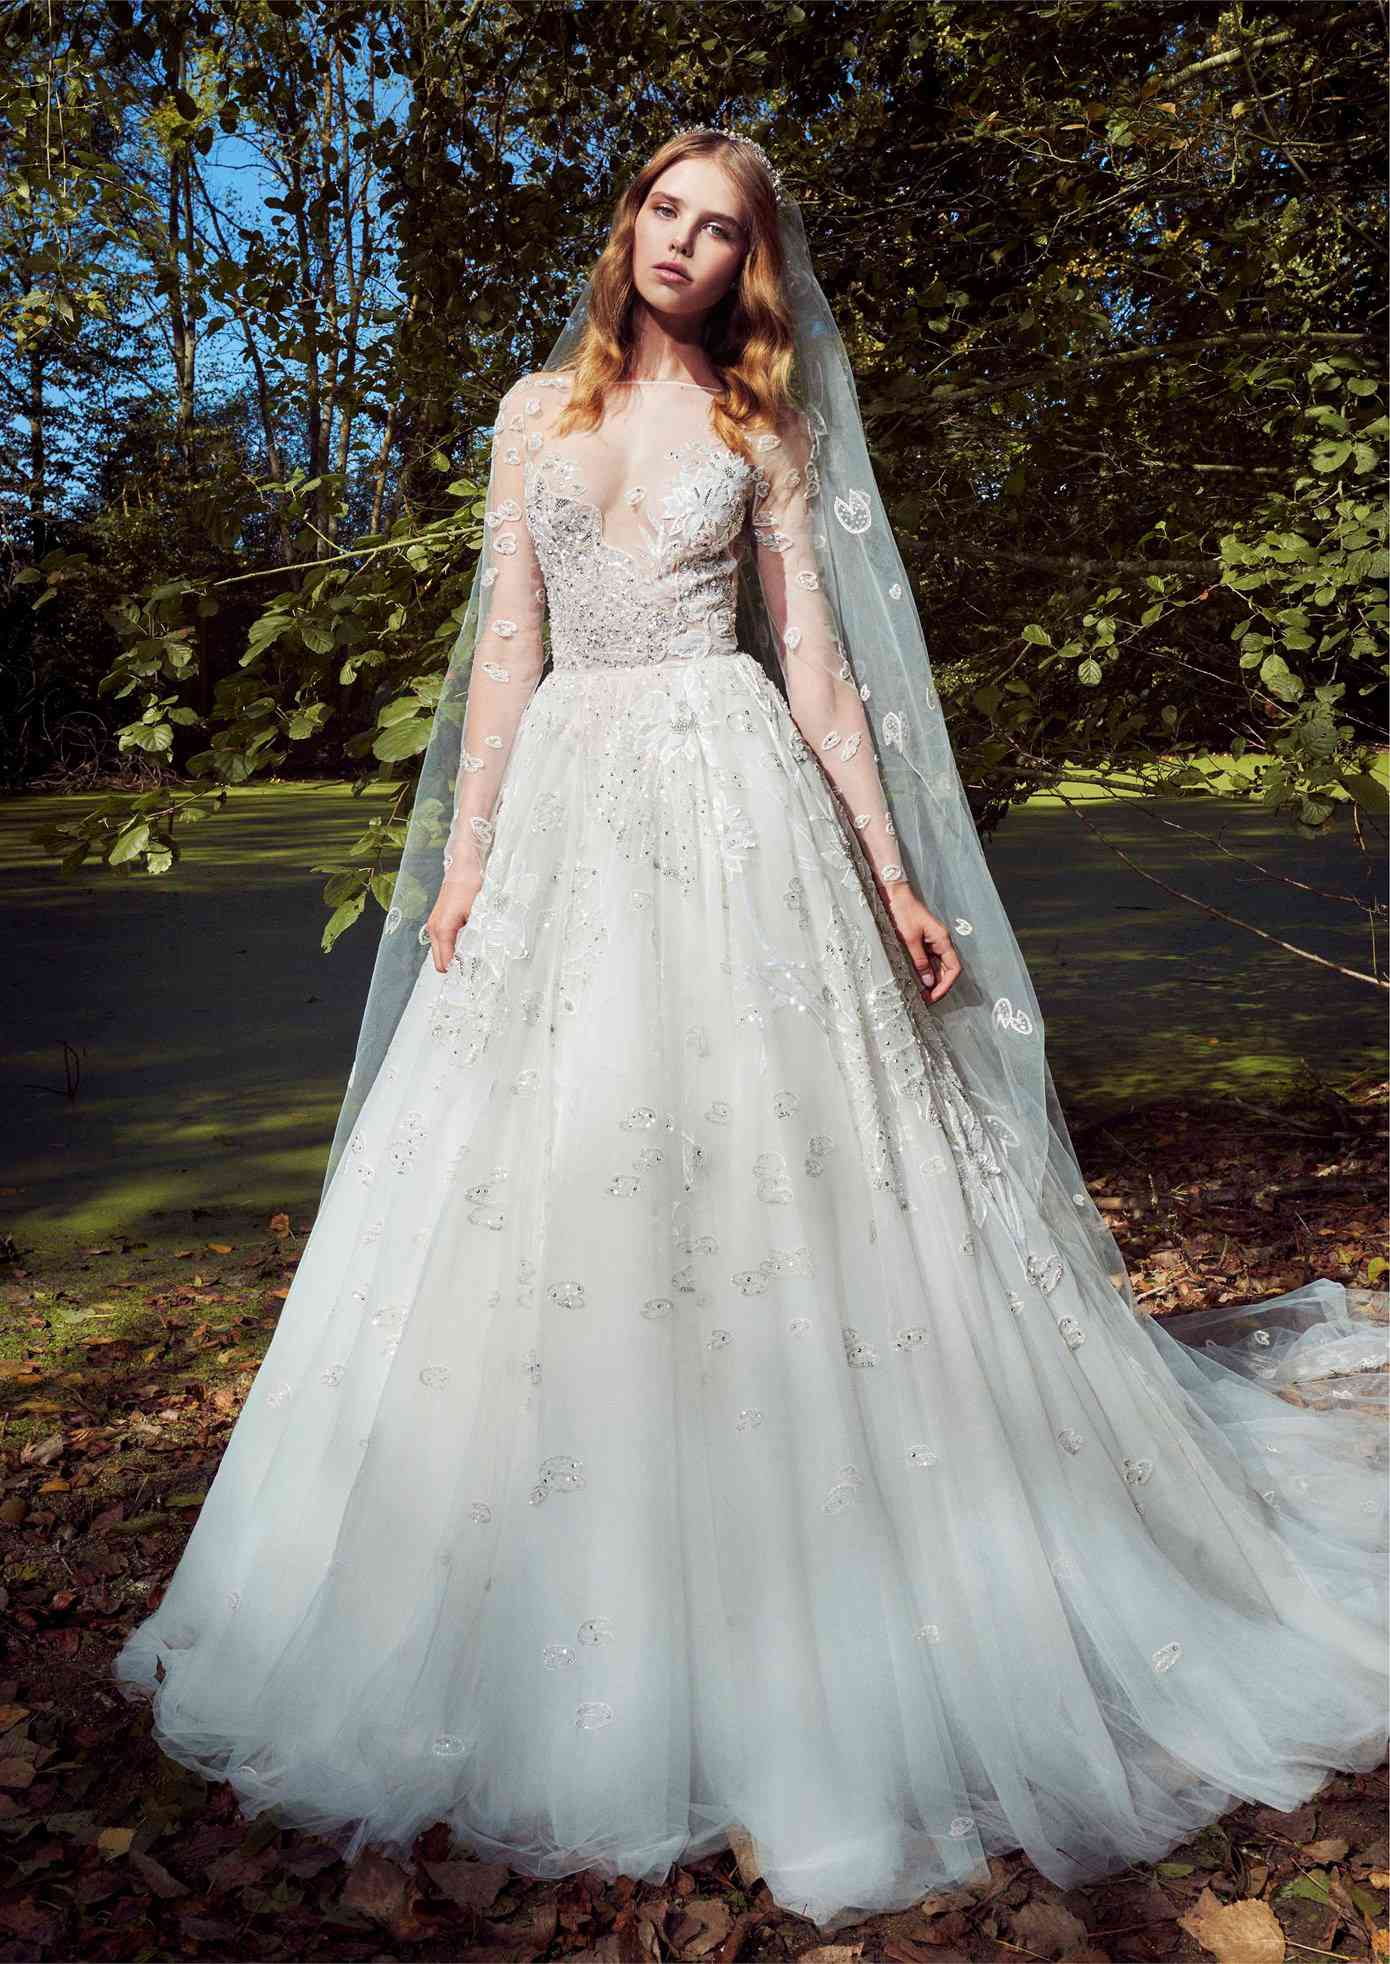 Model in tulle ballgown with illusion long sleeves and neckline with silver sequined embroidery and a matching veil